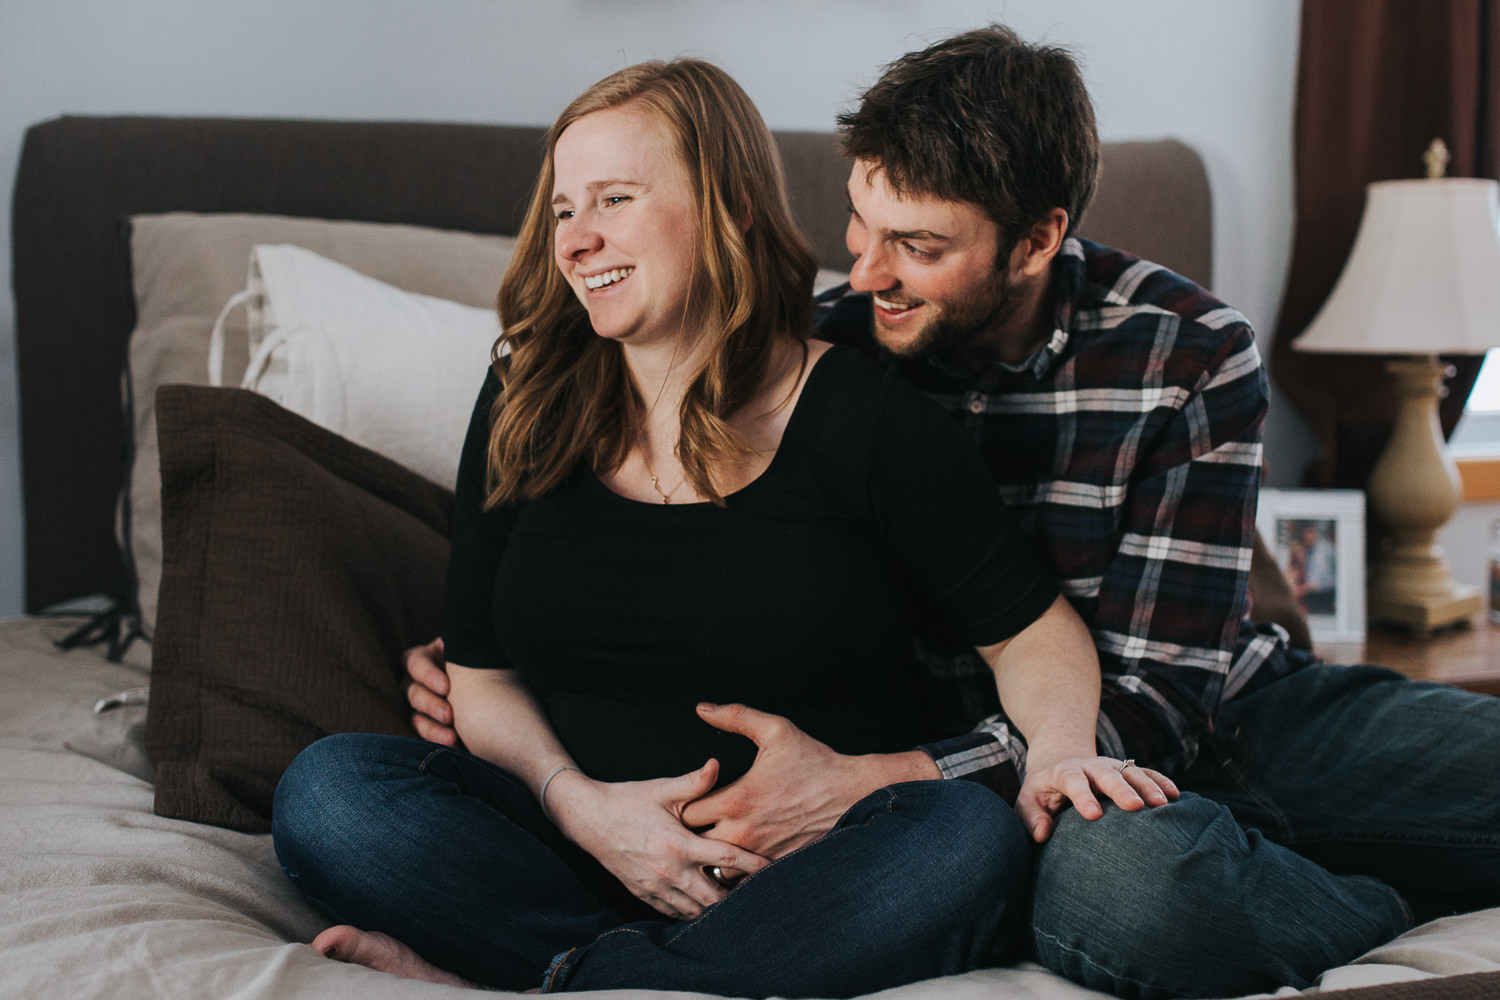 pregnant wife and husband laughing on bed - Markham lifestyle photography